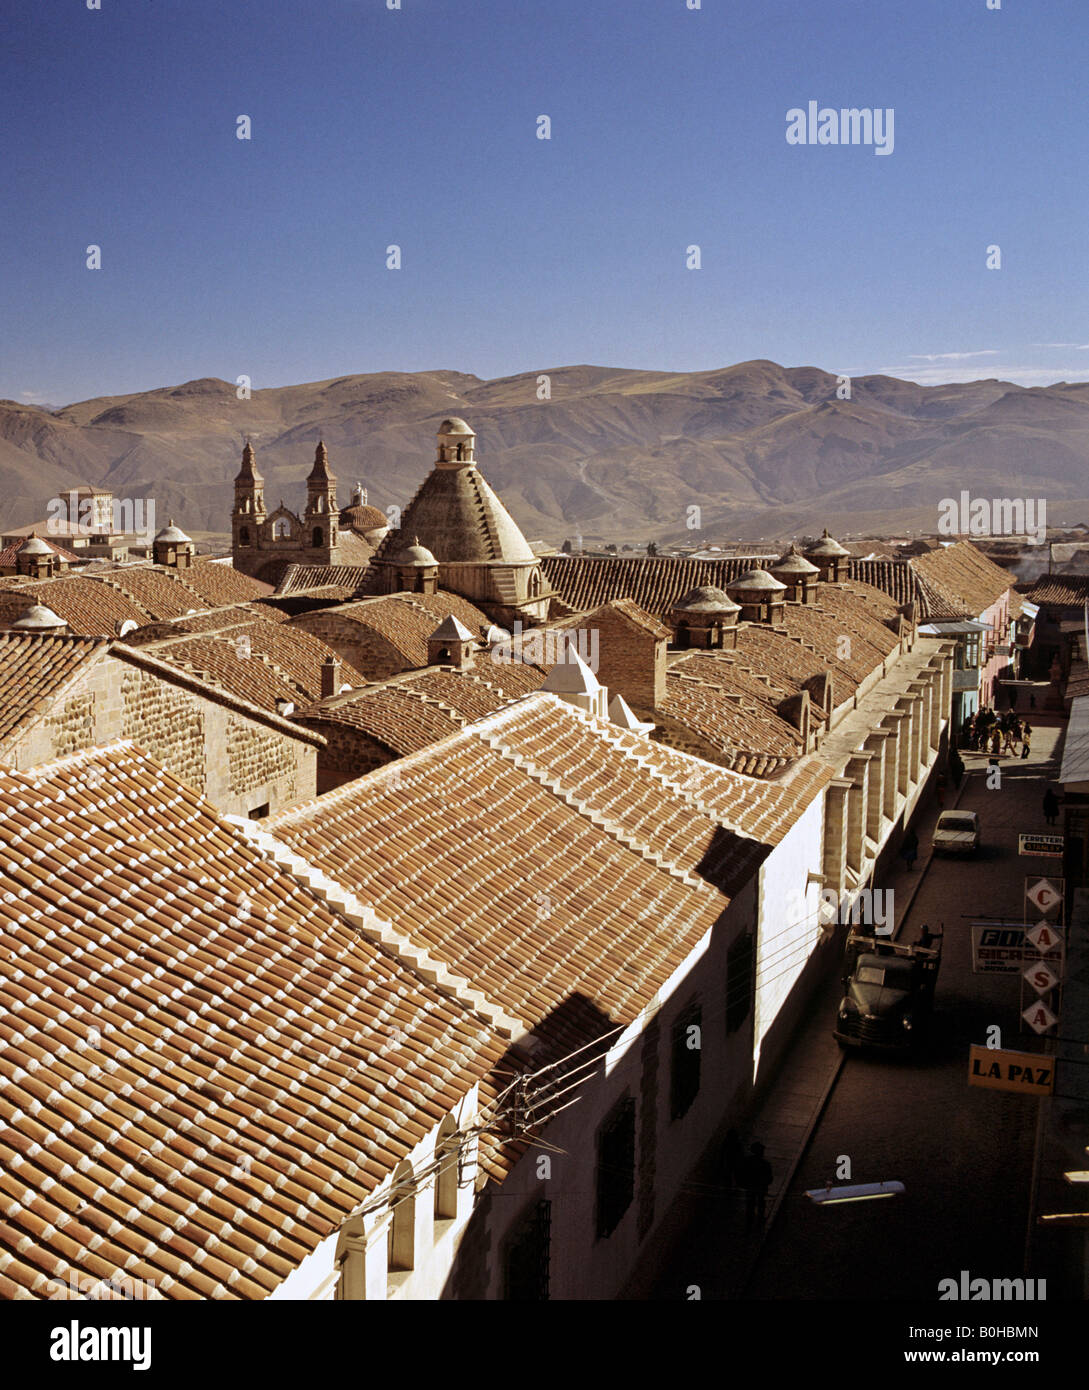 Rooftops and cathedral, Potosi, Bolivia - Stock Image